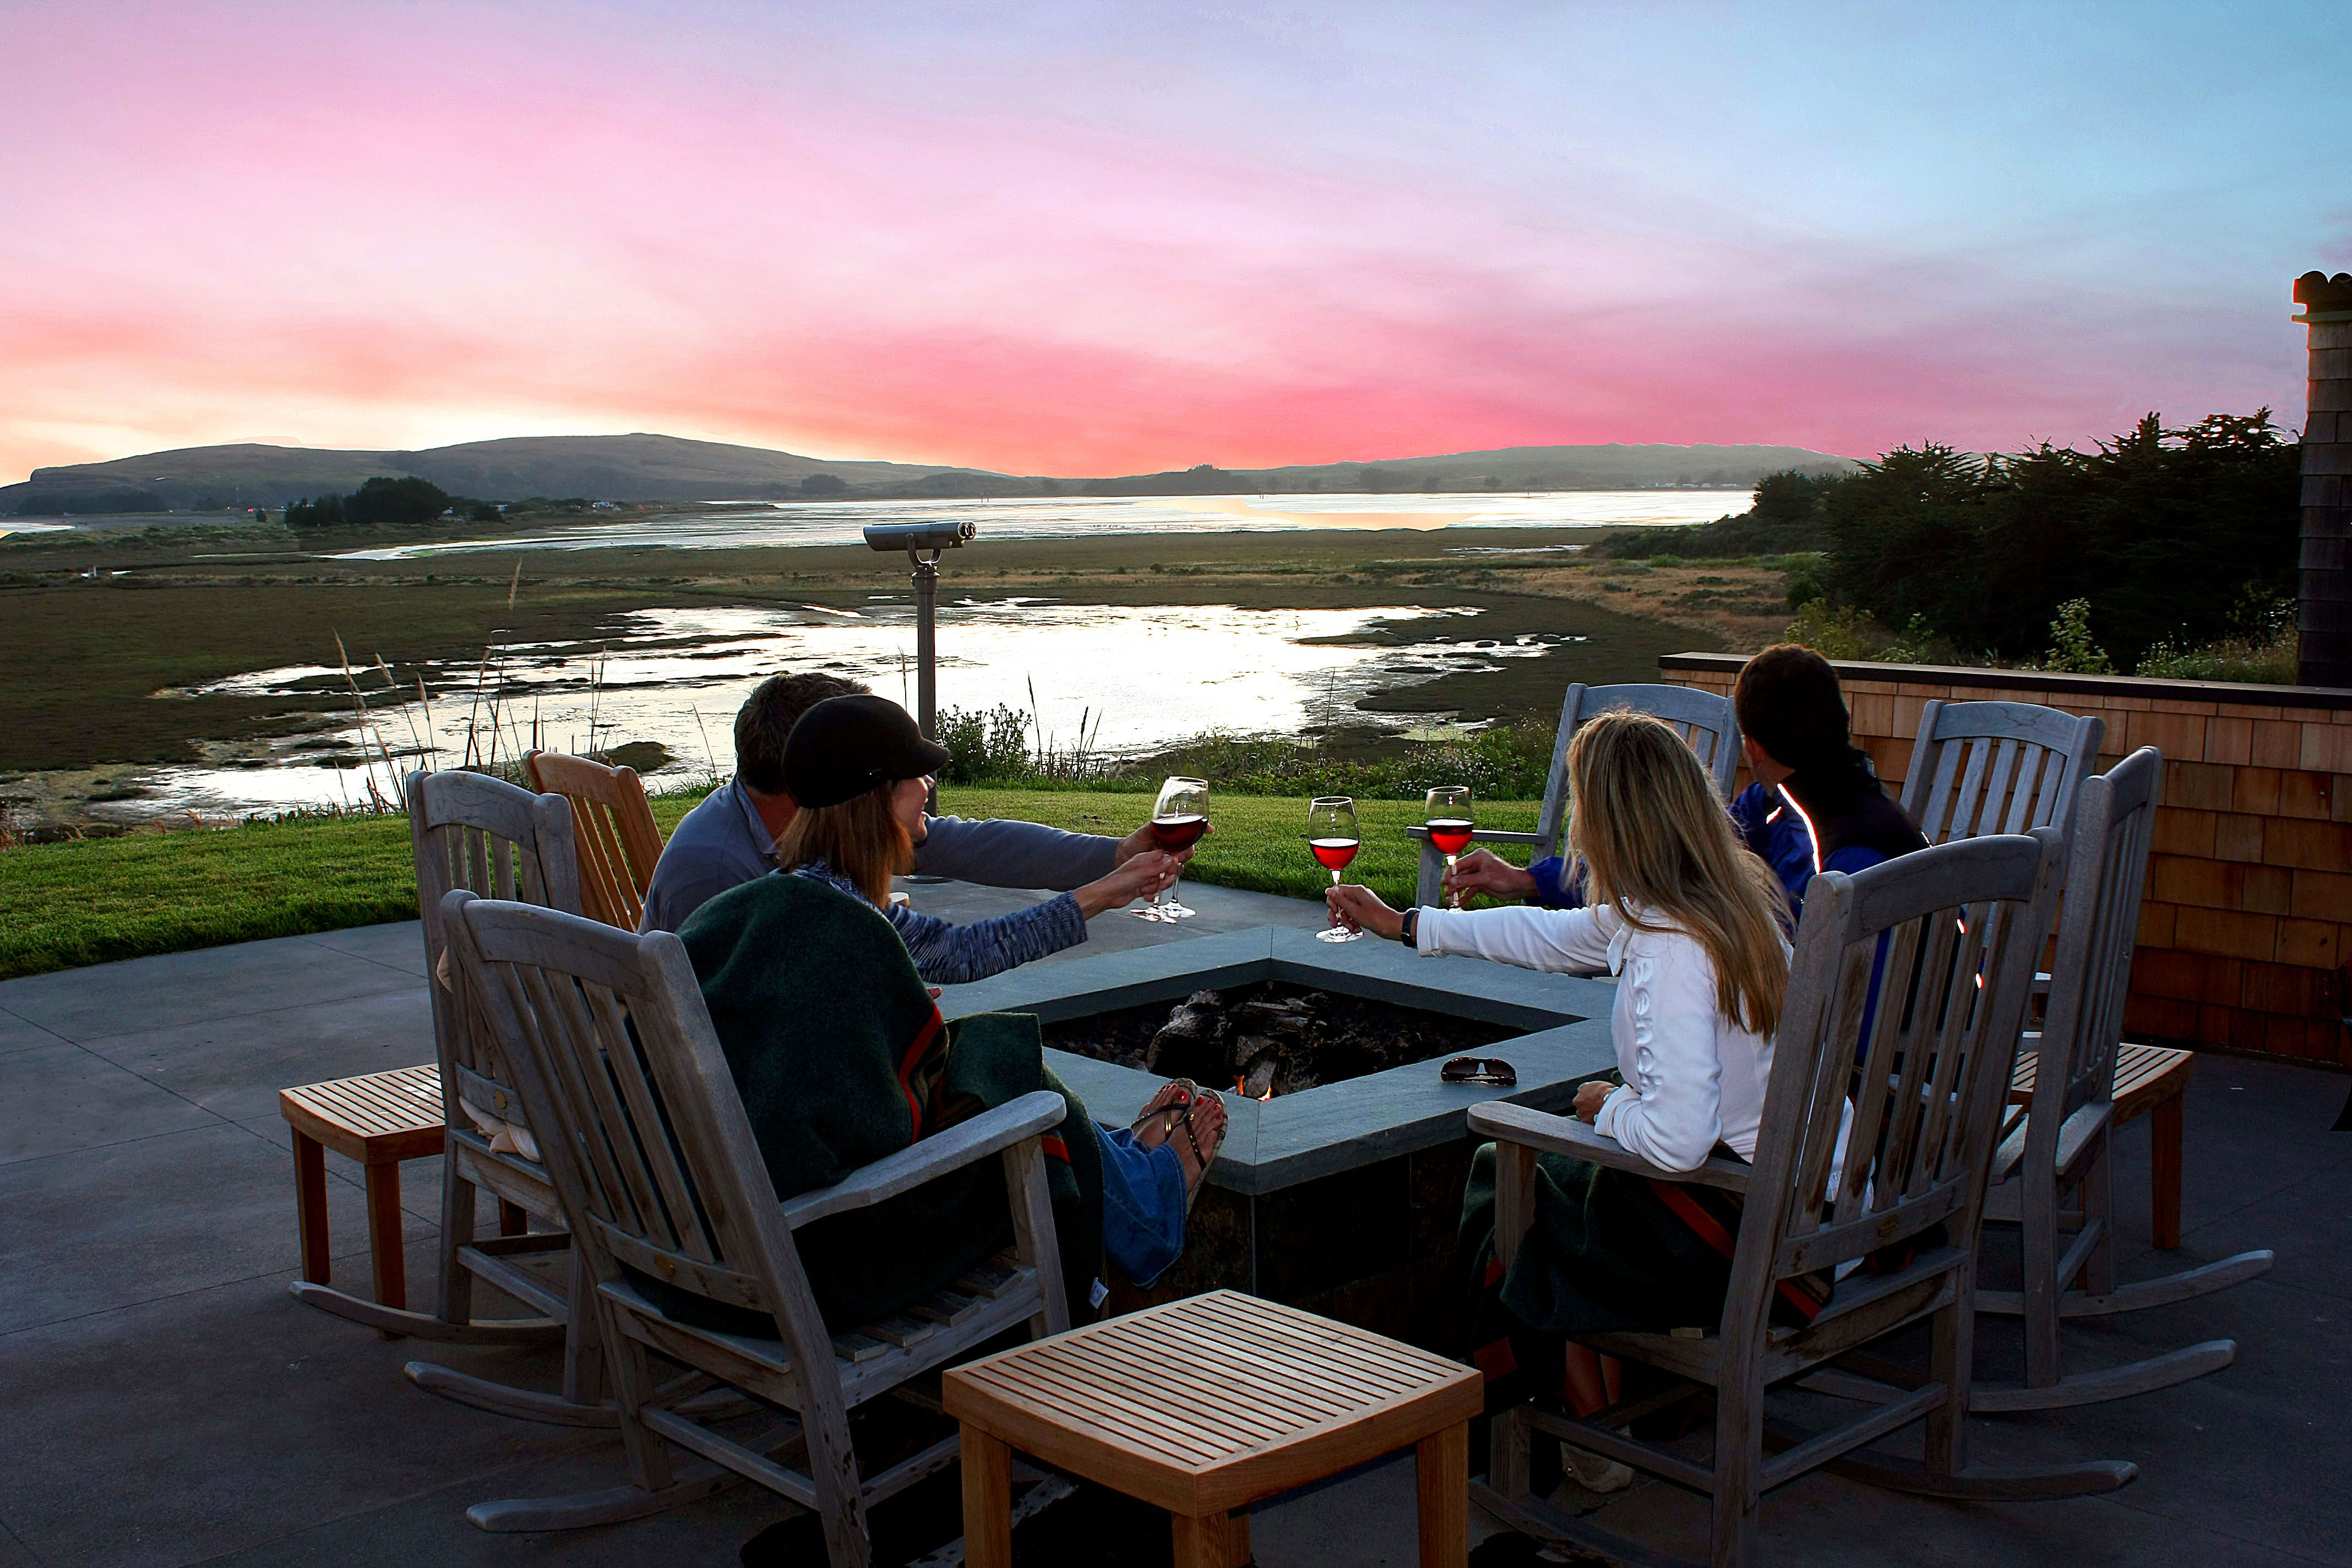 The Duck Club In Bodega Bay Ca Has Been Named One Of 10 Most Beautiful Restaurant Views America